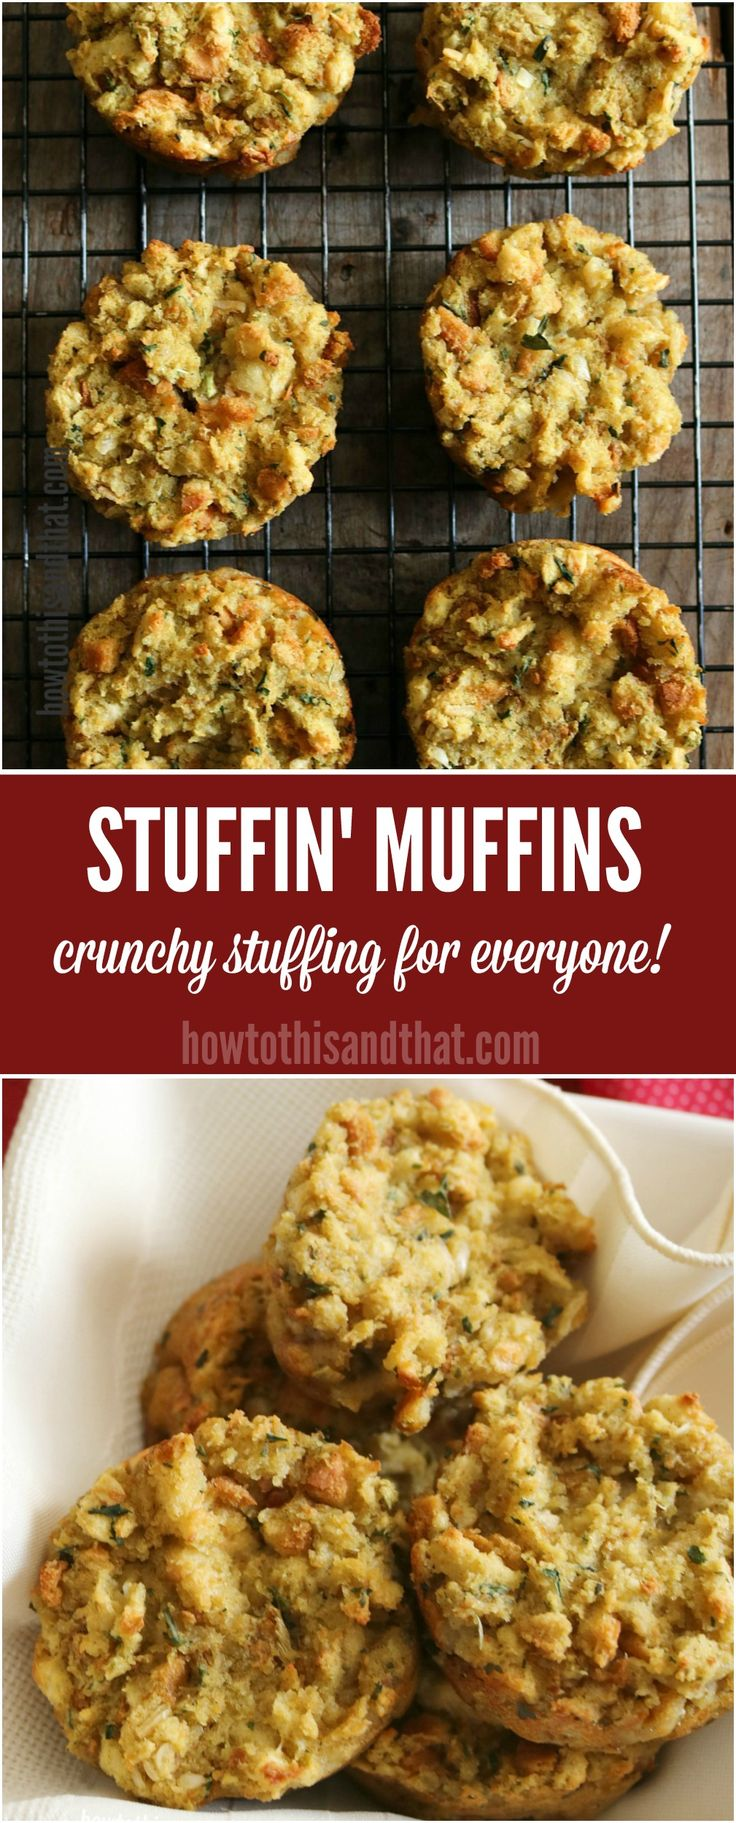 Stuffing Muffins- If you are a fan of those crunchy edges on the stuffing, then fight with your family over them no more! This easy preparation let's